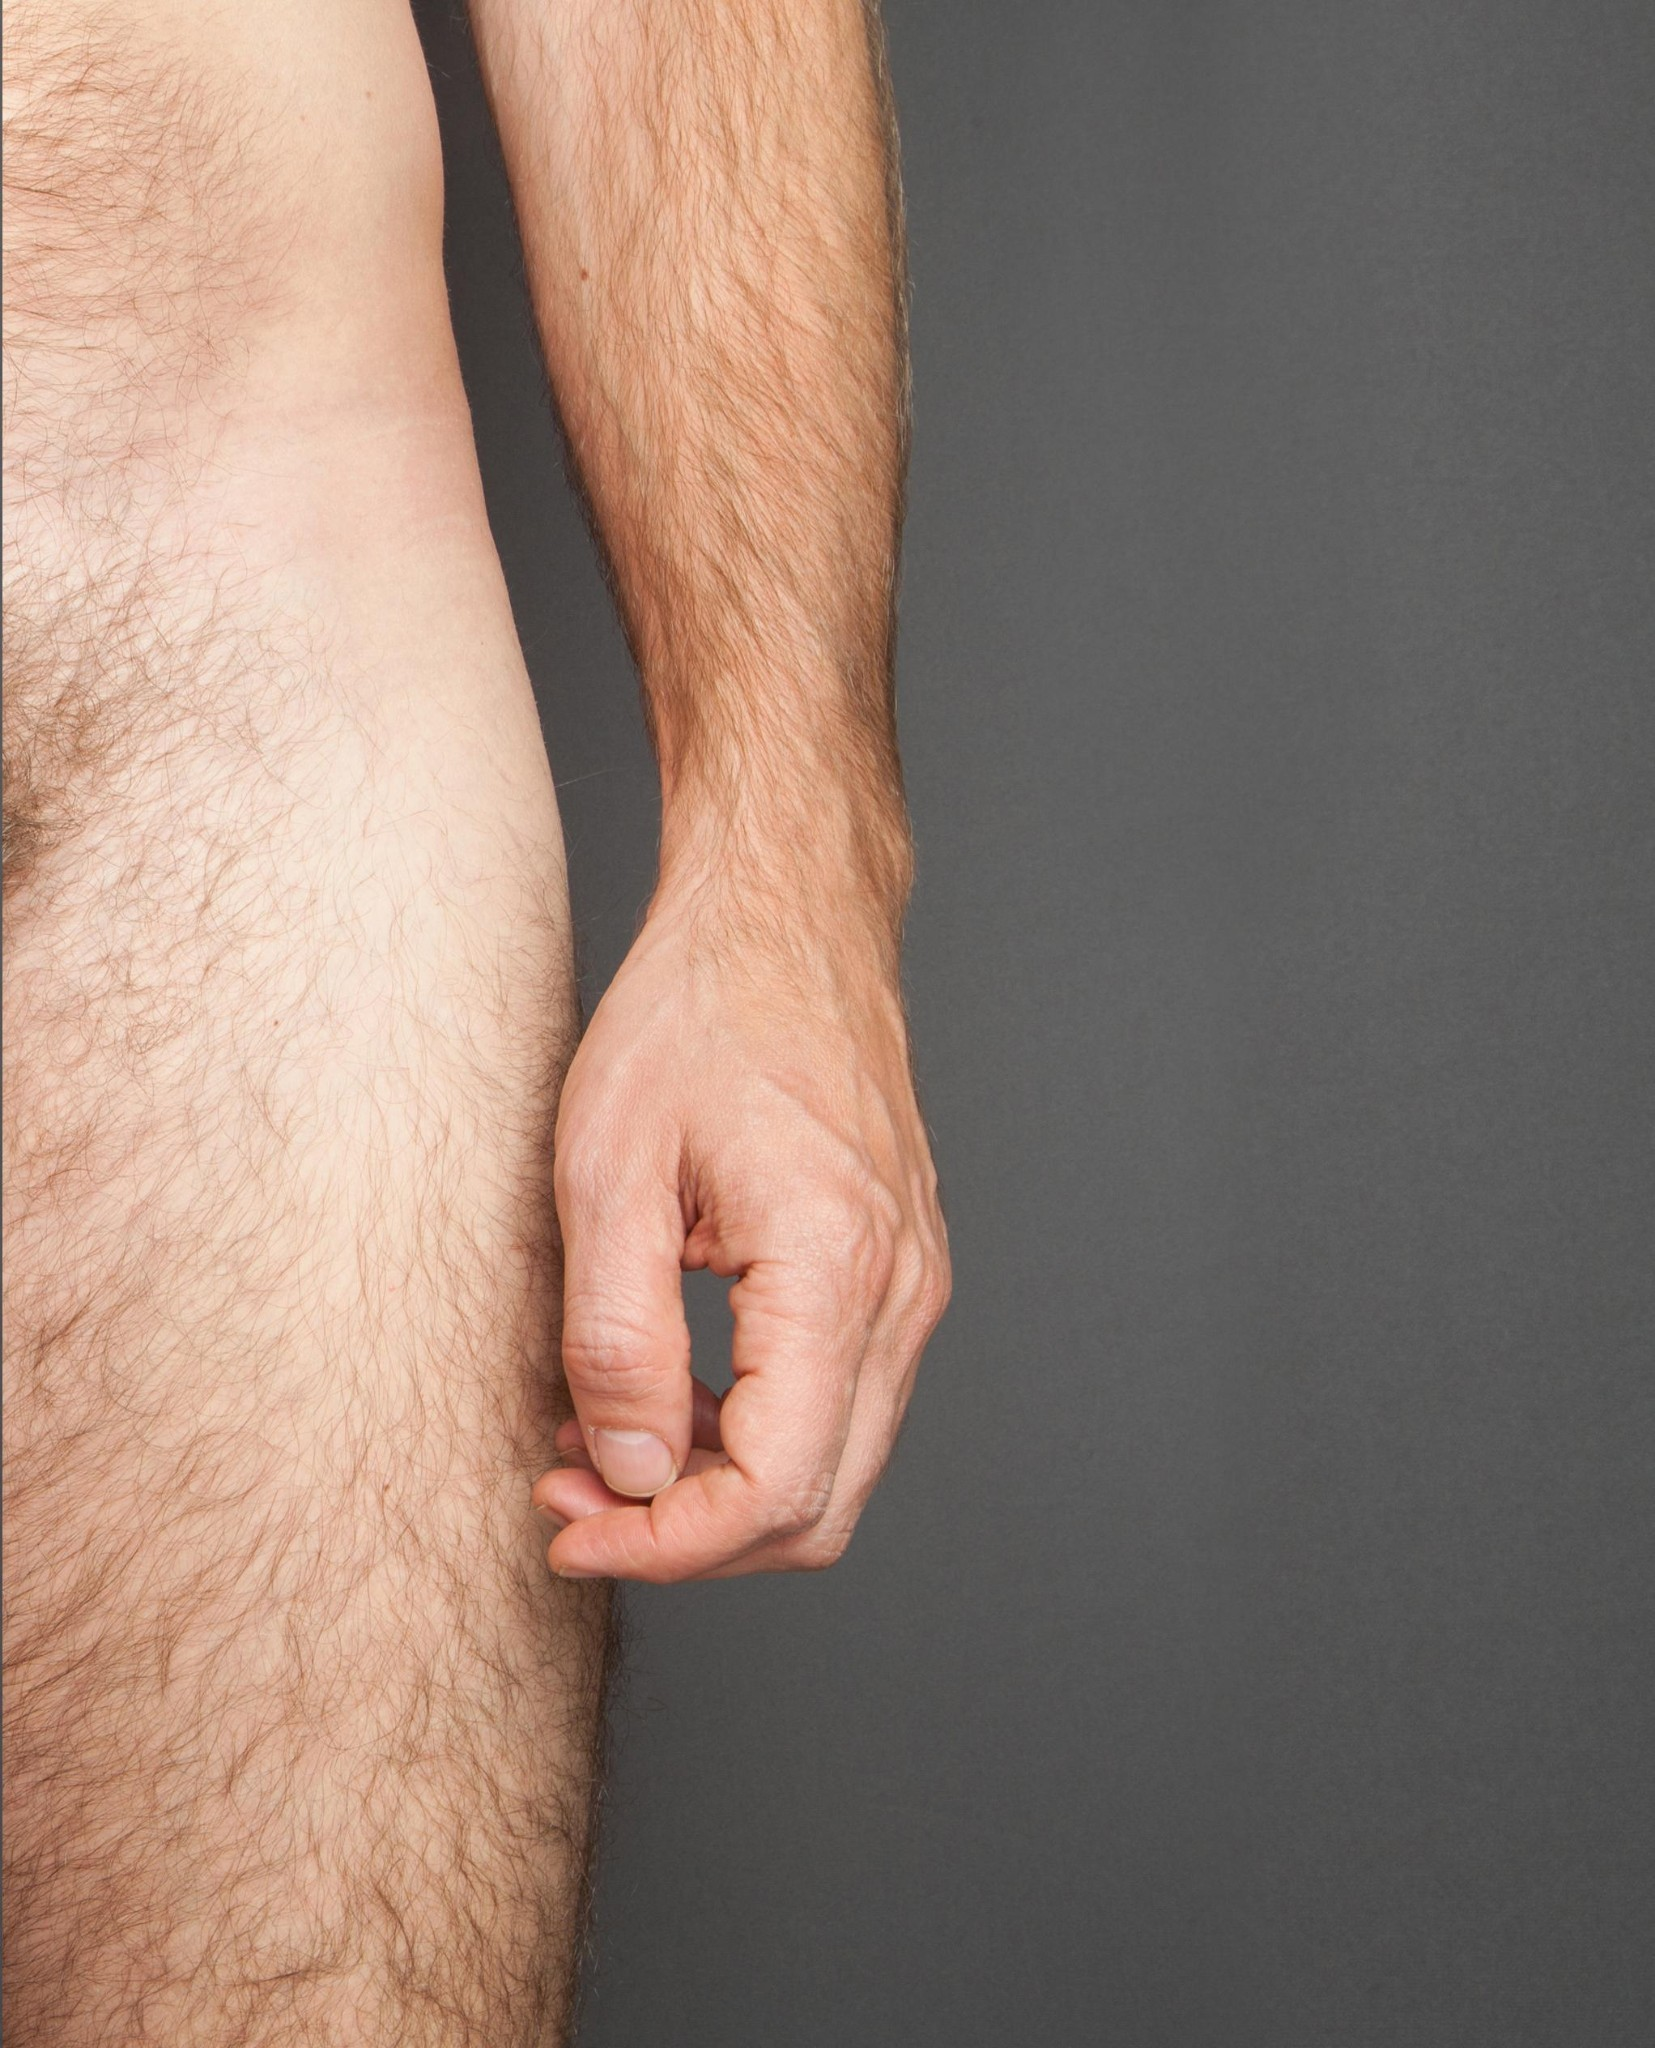 Me and my penis: 100 men reveal all